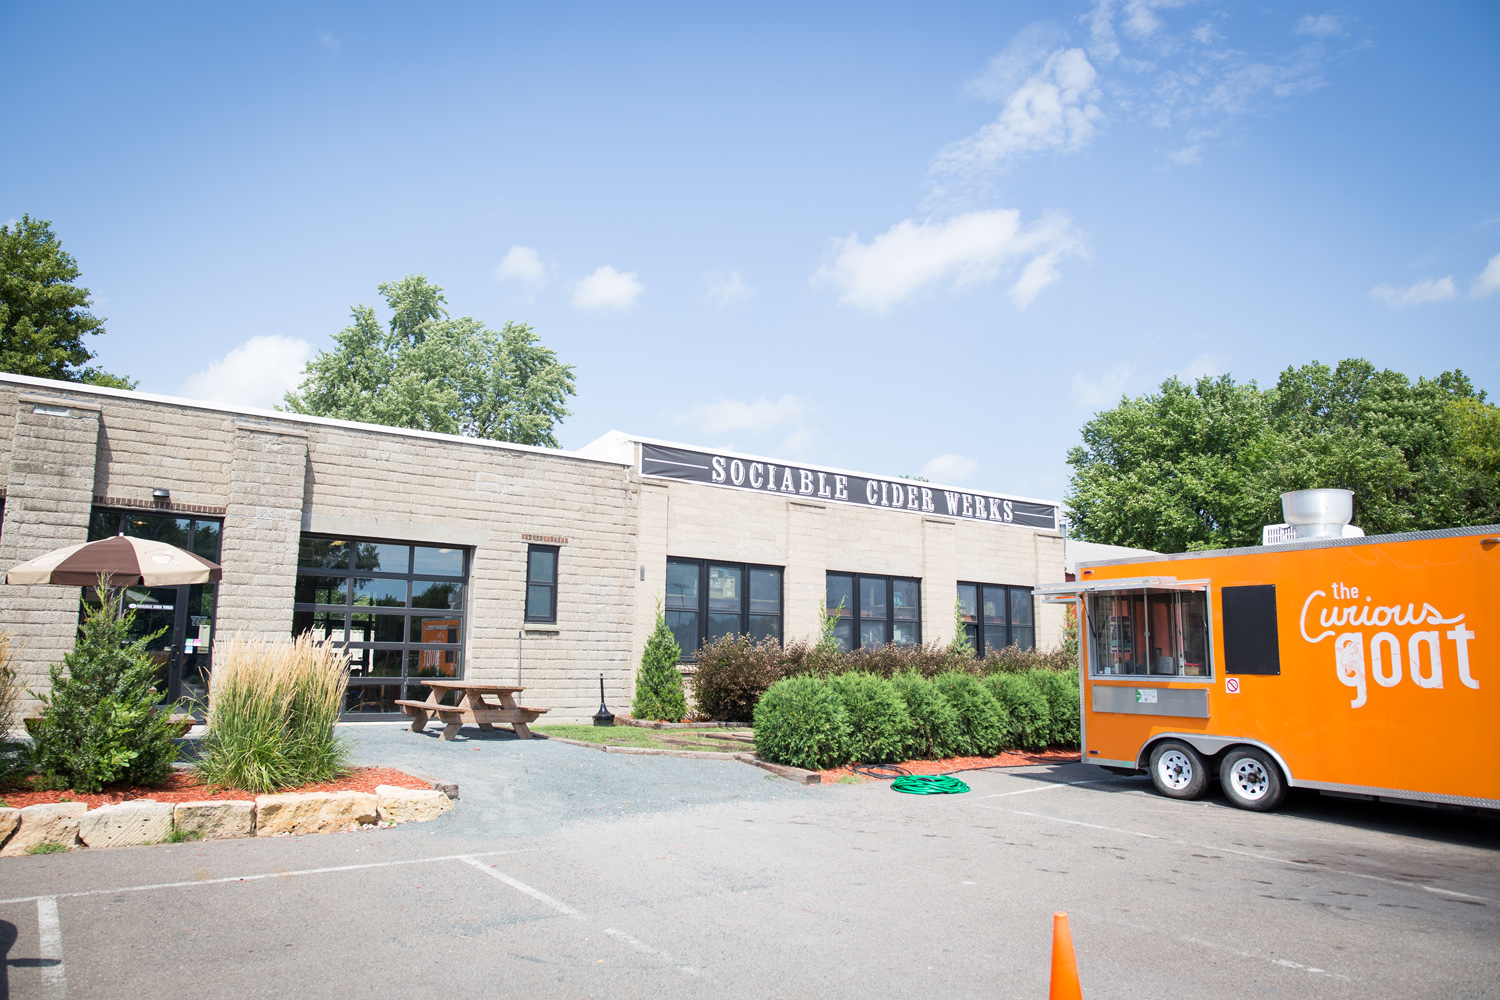 The Curious Goat food truck parked outside of Sociable Cider Werks in Northeast Minneapolis // Photo by Aaron Davidson